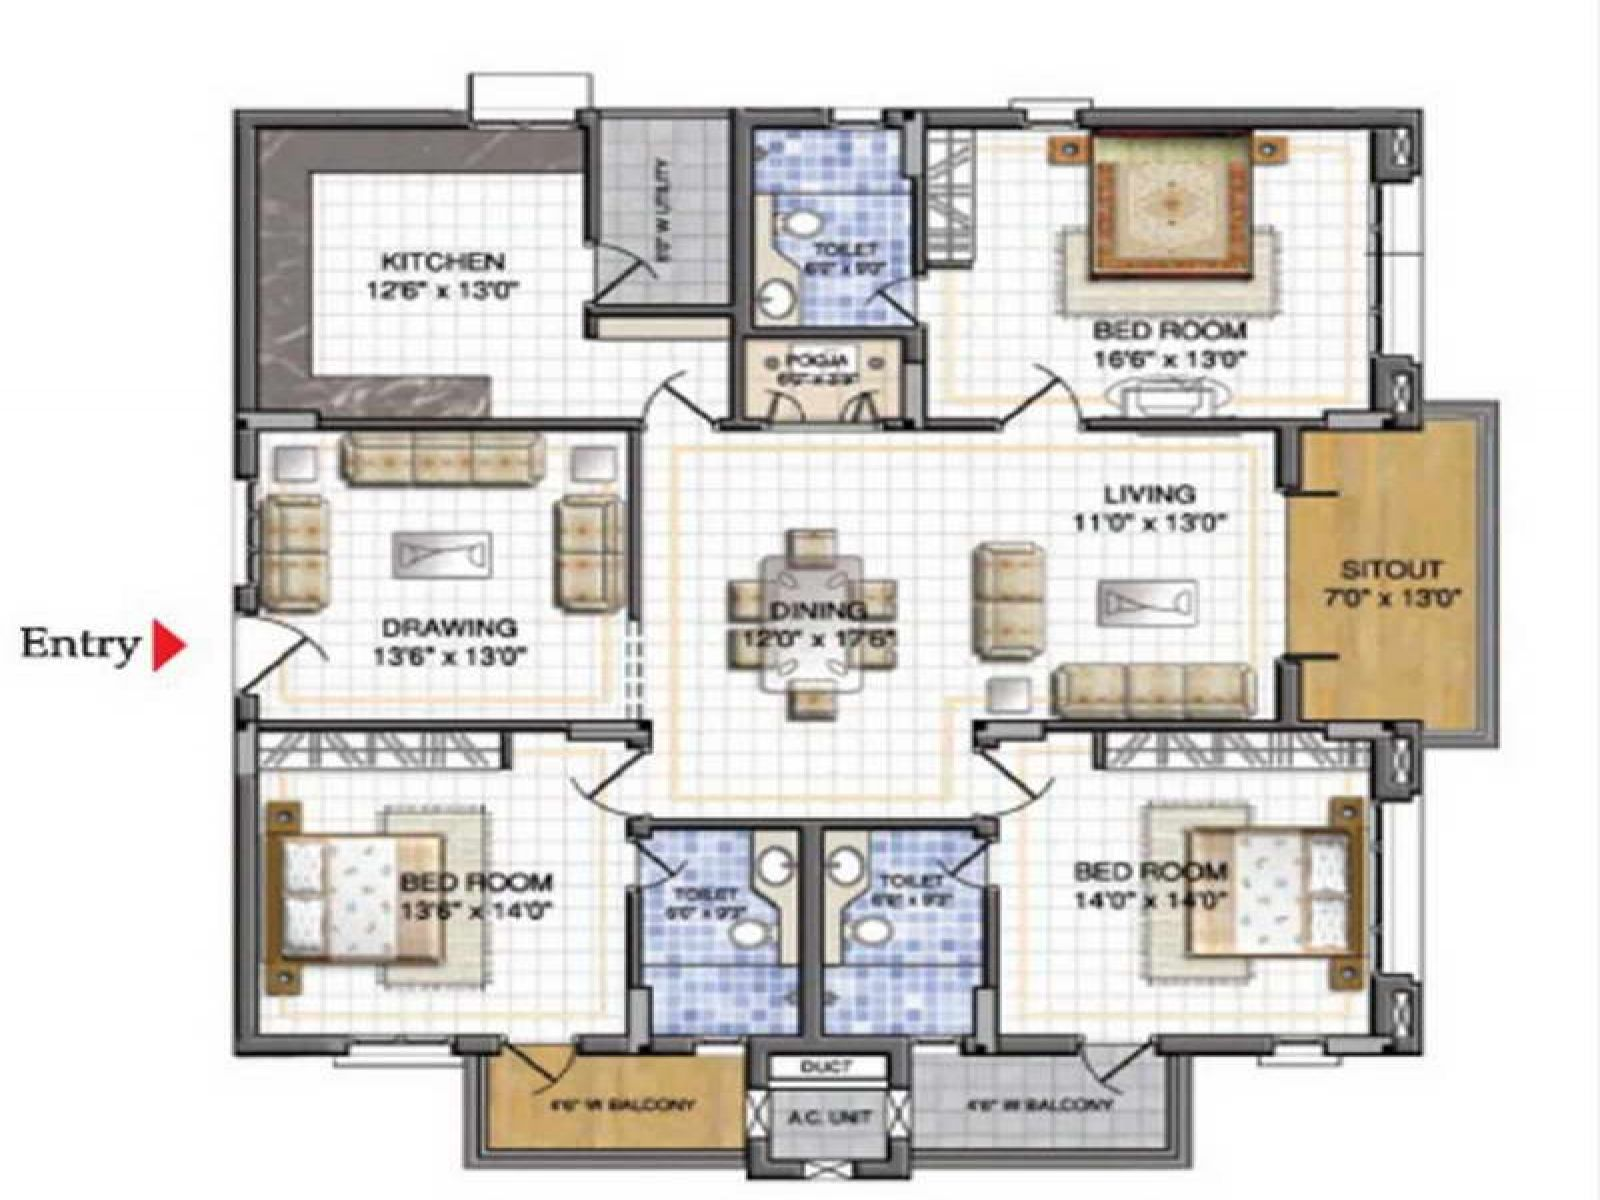 Sweet home 3d plans google search house designs Create house plans online free